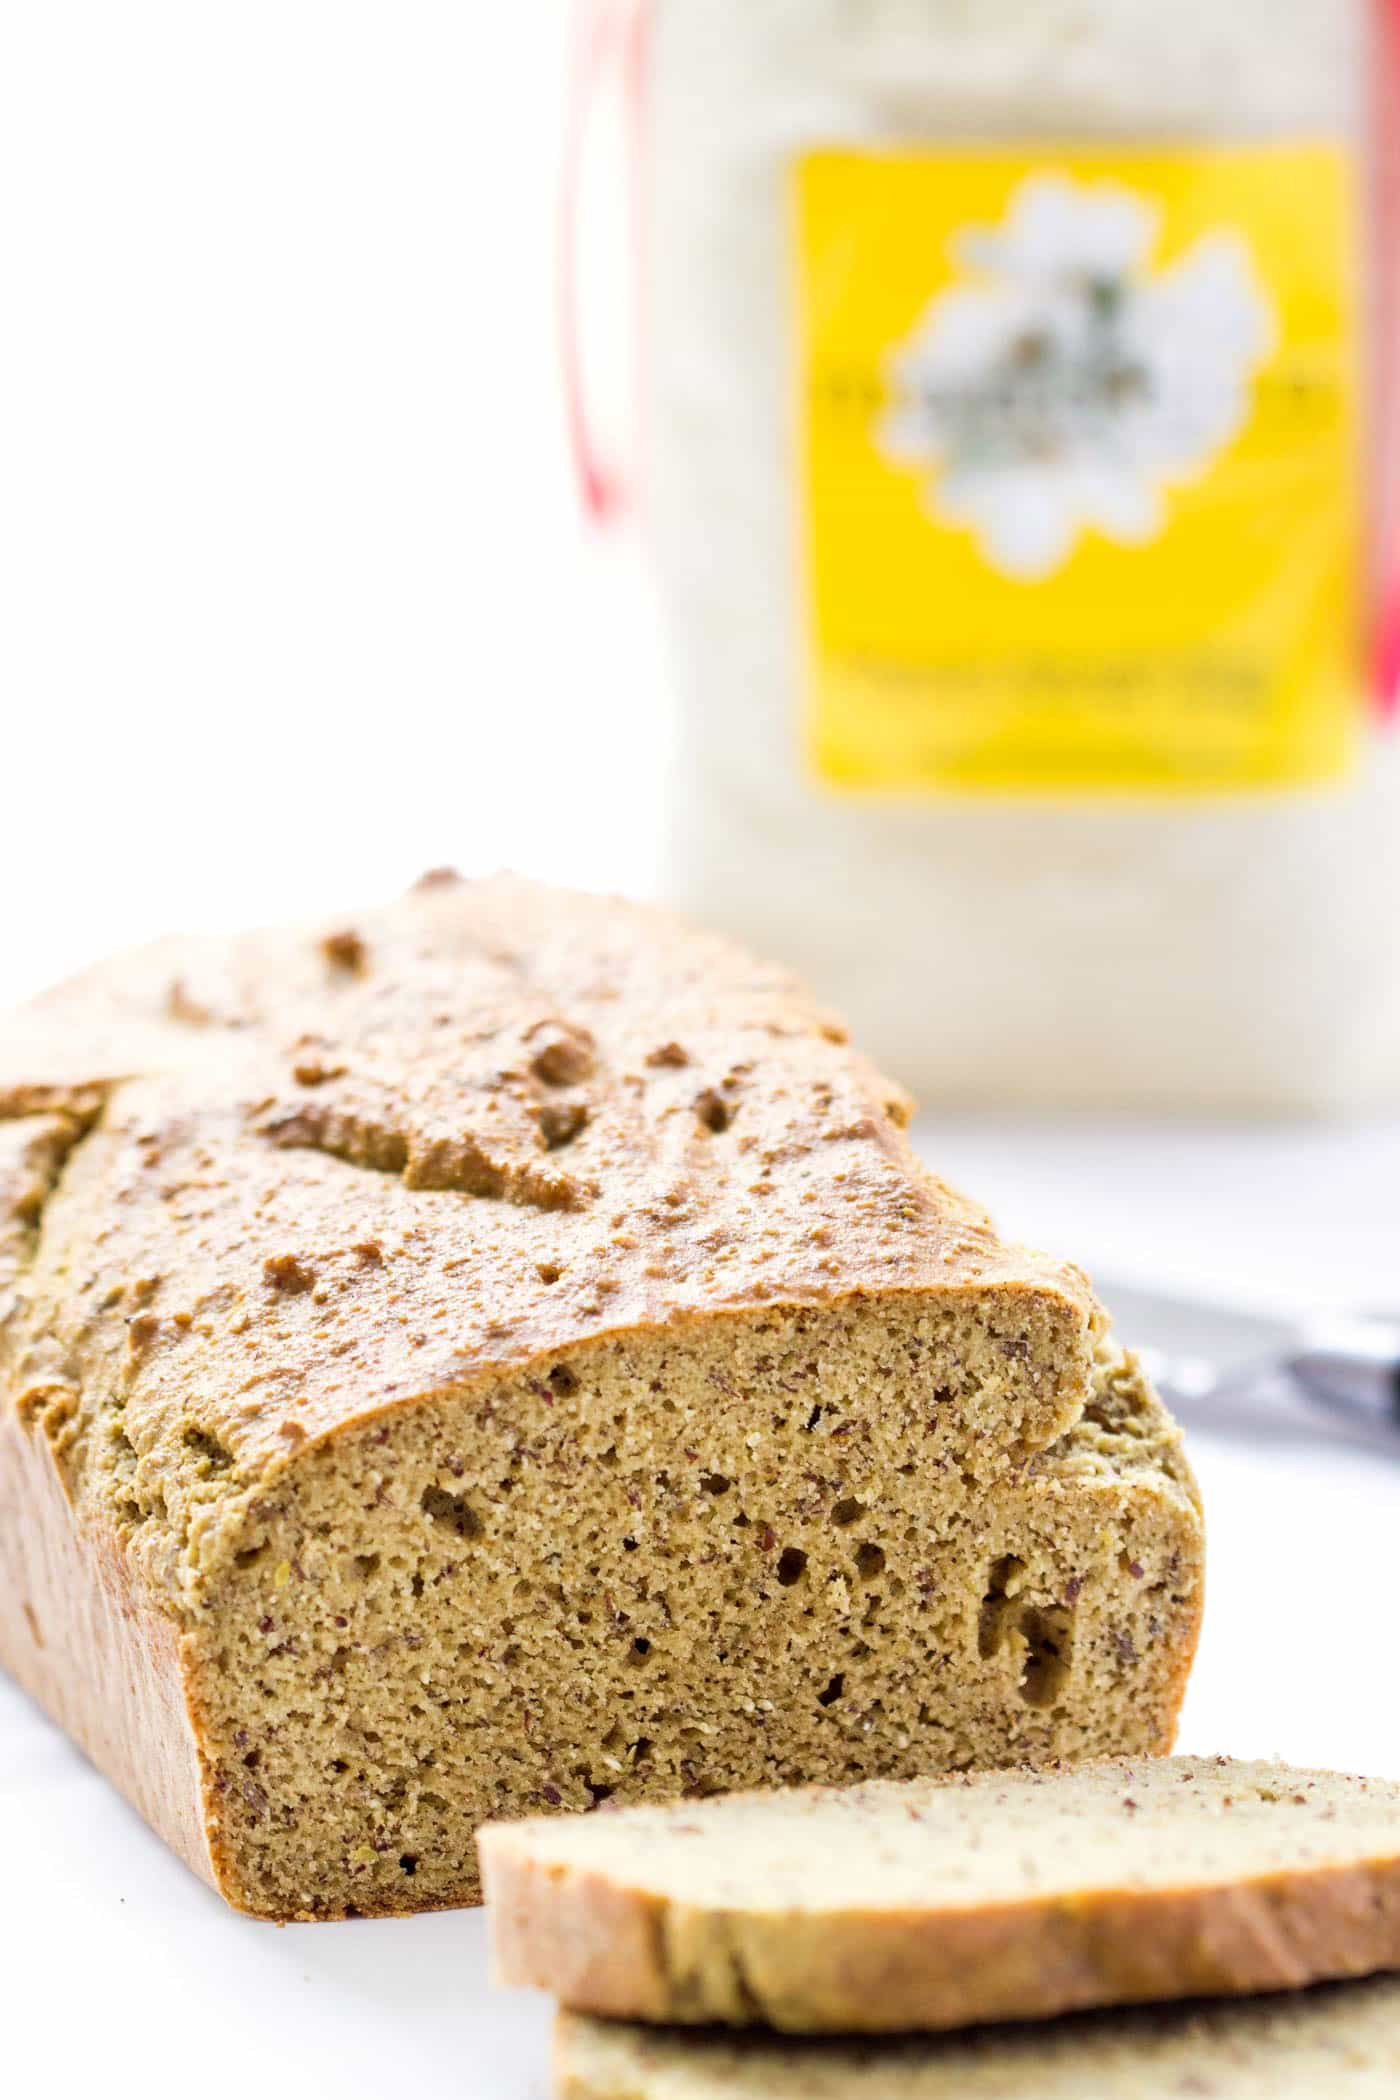 Quinoa Almond Flour Bread made with blanched almond flour, flaxseed meal and other gluten-free goodies